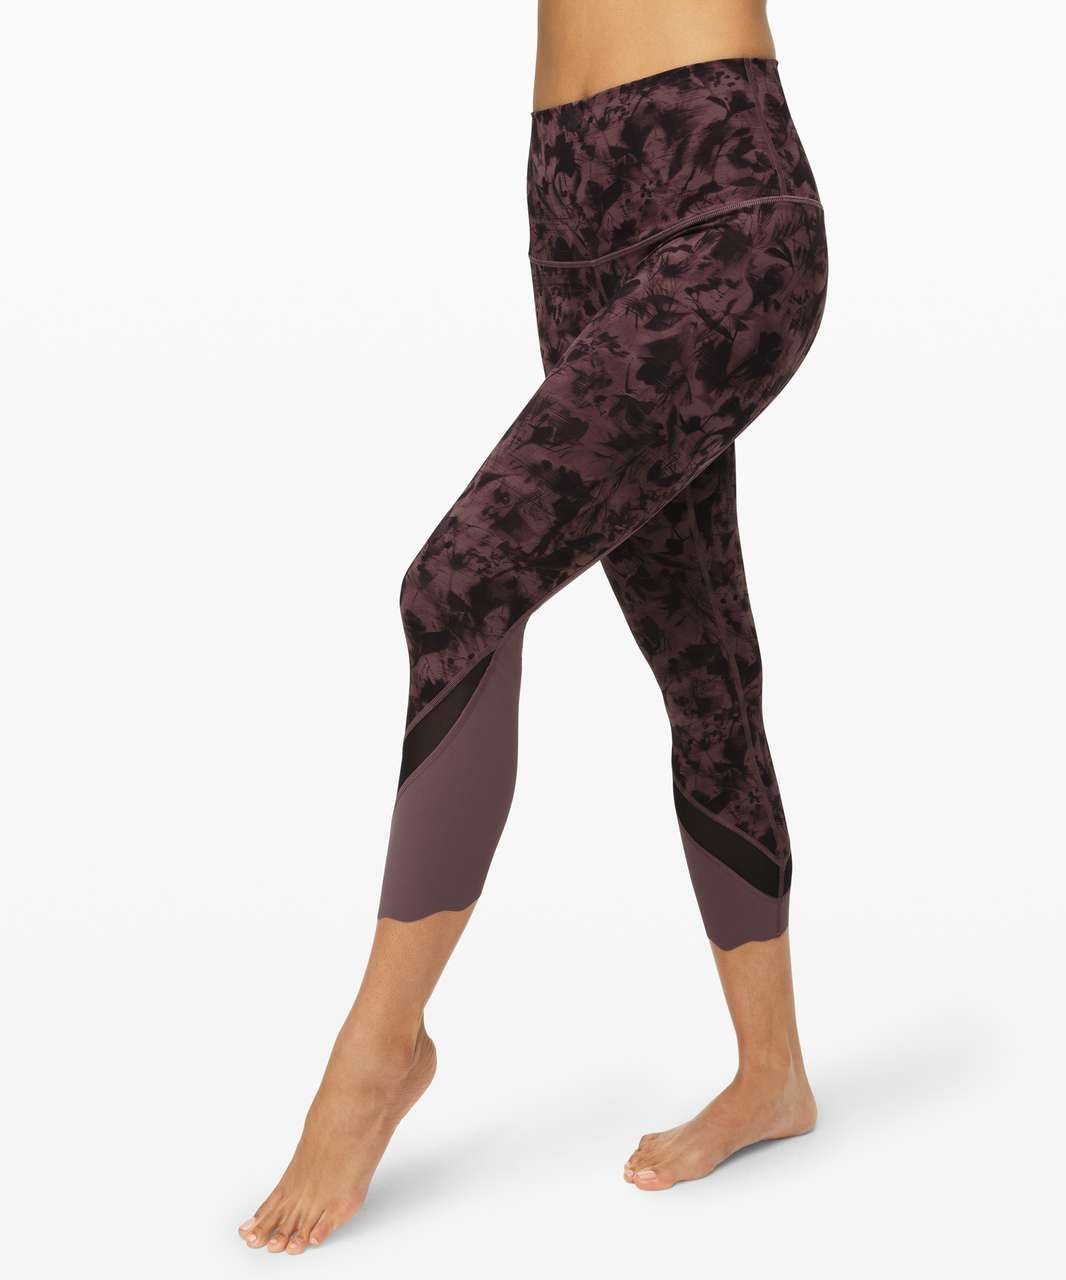 "Lululemon Wunder Under Crop II *Roll Down Scallop Full-On Luxtreme 24"" - Mini Dusk Floral Antique Bark Black / Black / Antique Bark"